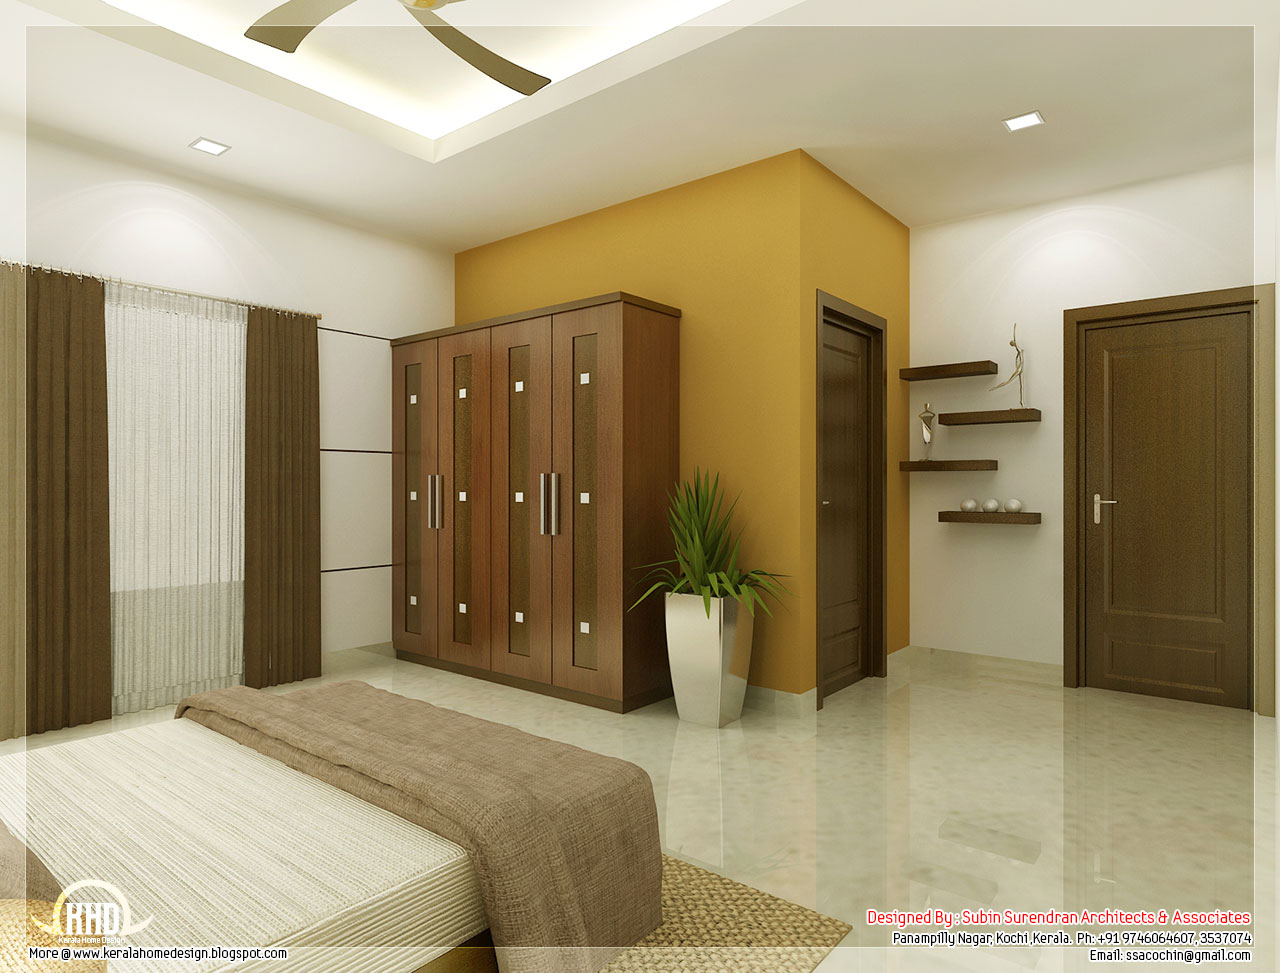 Beautiful bedroom interior designs kerala house design for Interior bed design images